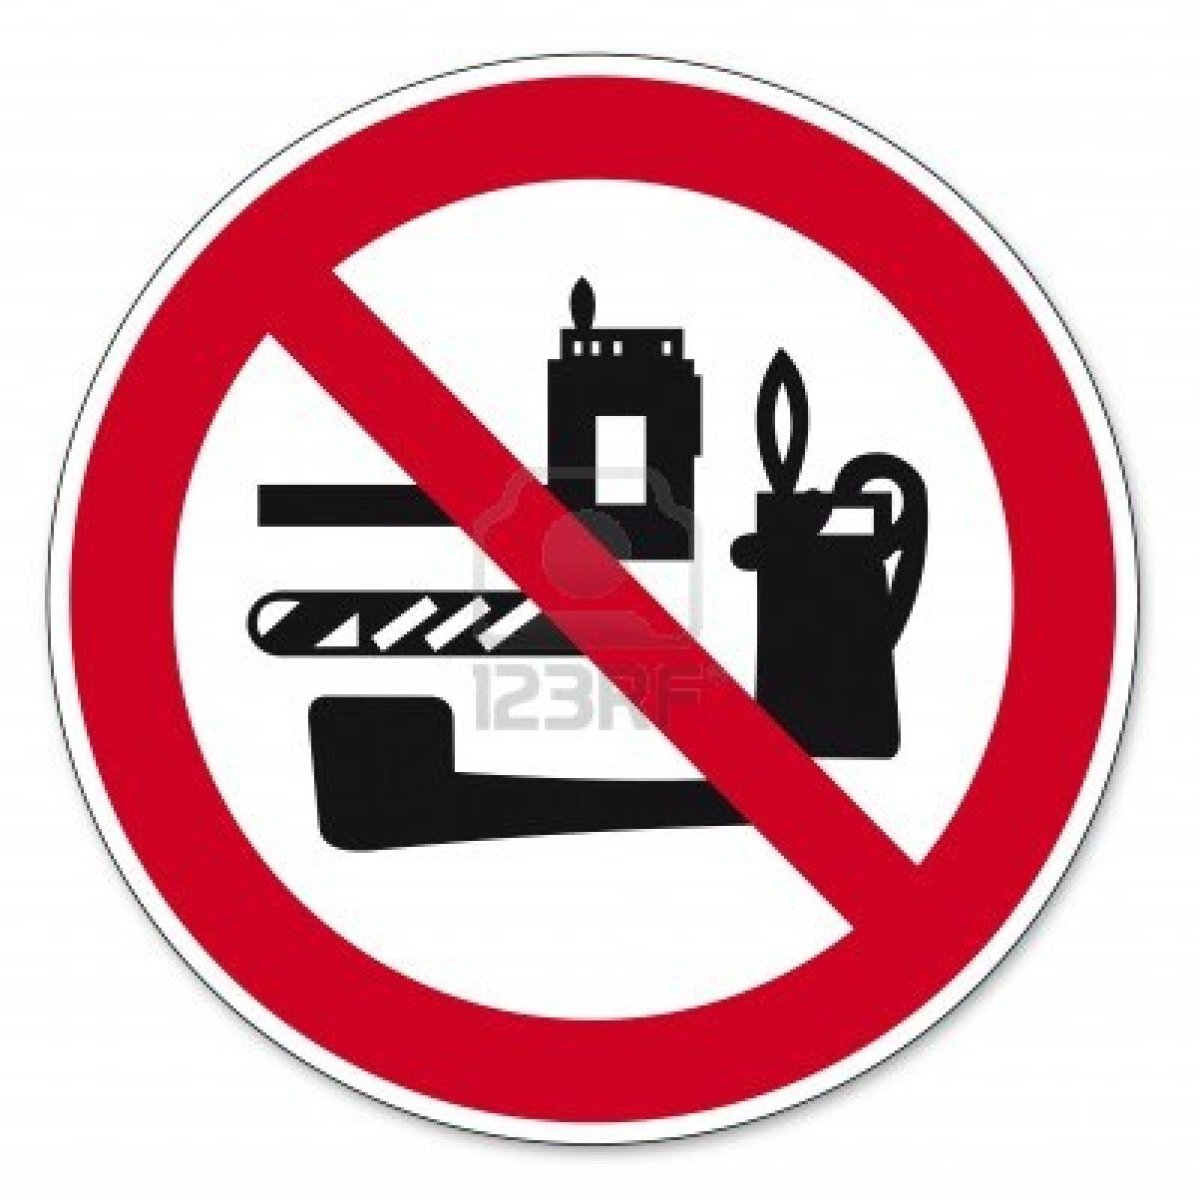 20130424XD-GooglImag-prohibition-signs-bgv-icon-pictogram-transportation-of-tobacco-products-lighters-and-strike-prohibit